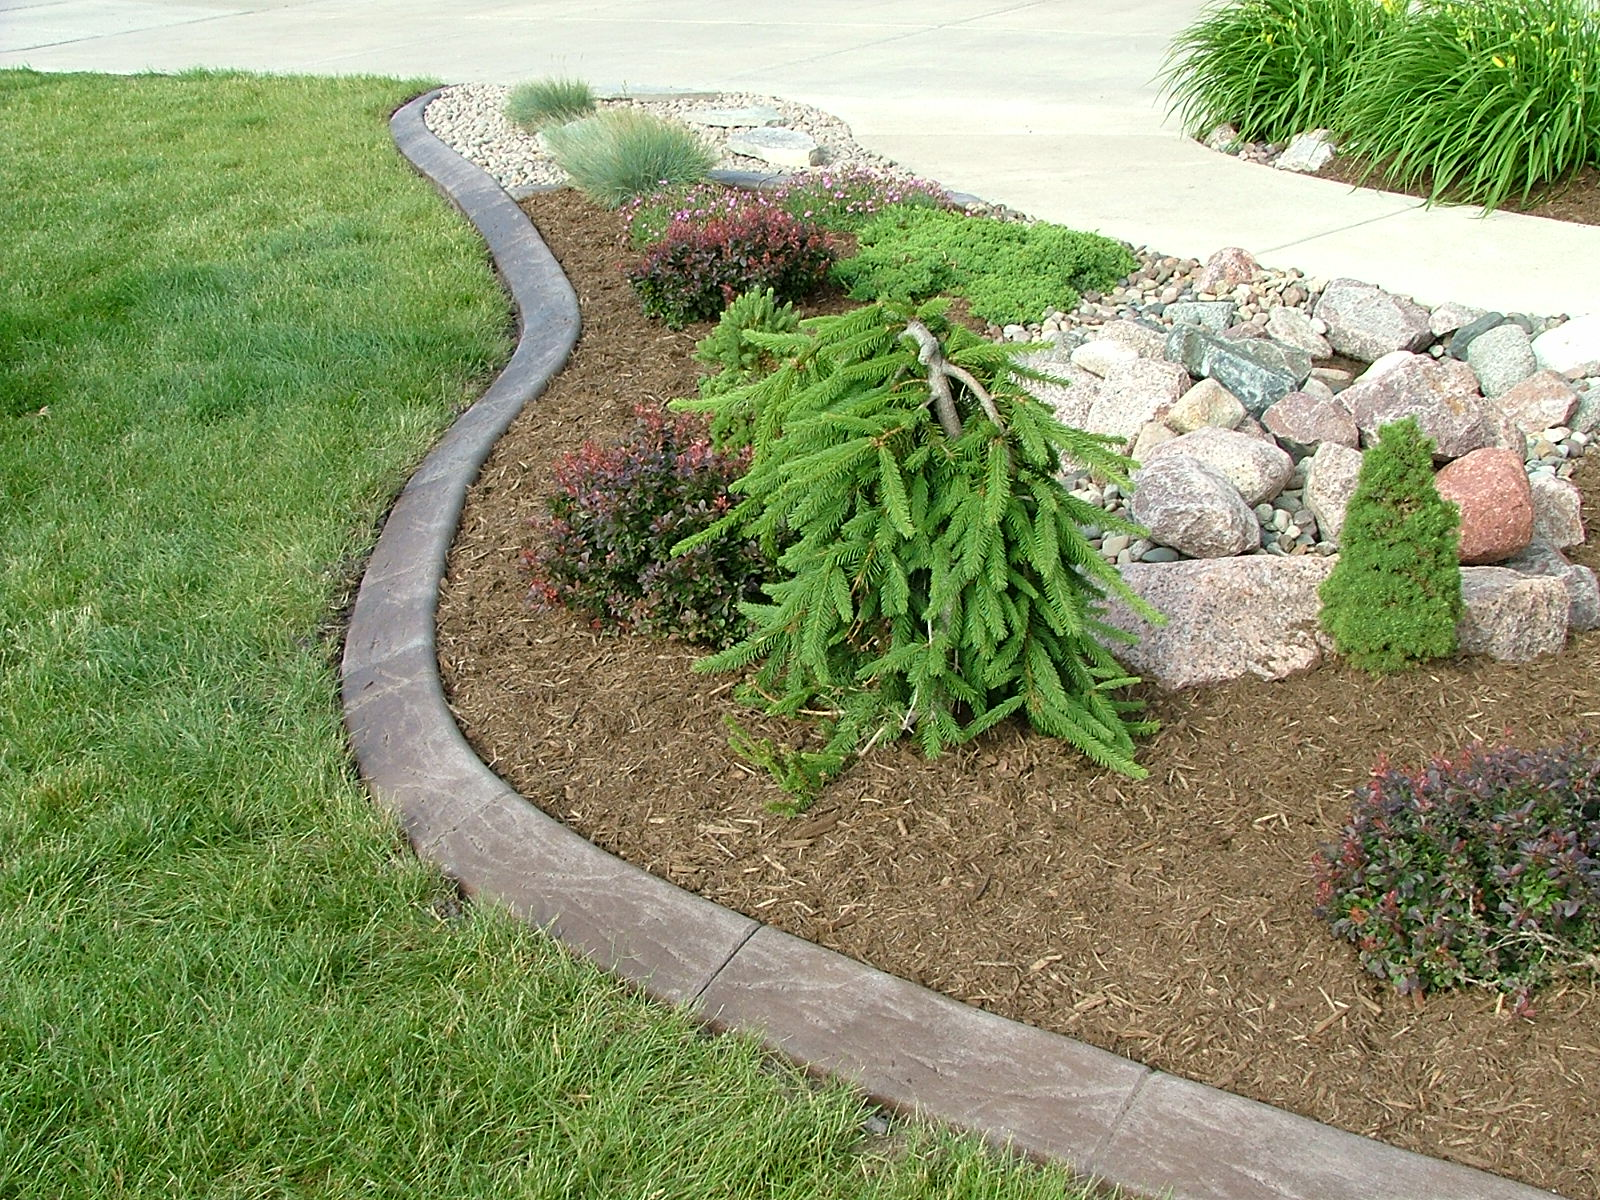 Create Solid Boundaries in Your Lawn and Garden with Home Depot Landscape Edging: Home Depot Flagstone | Home Depot Landscape Edging | Garden Edging Lowes